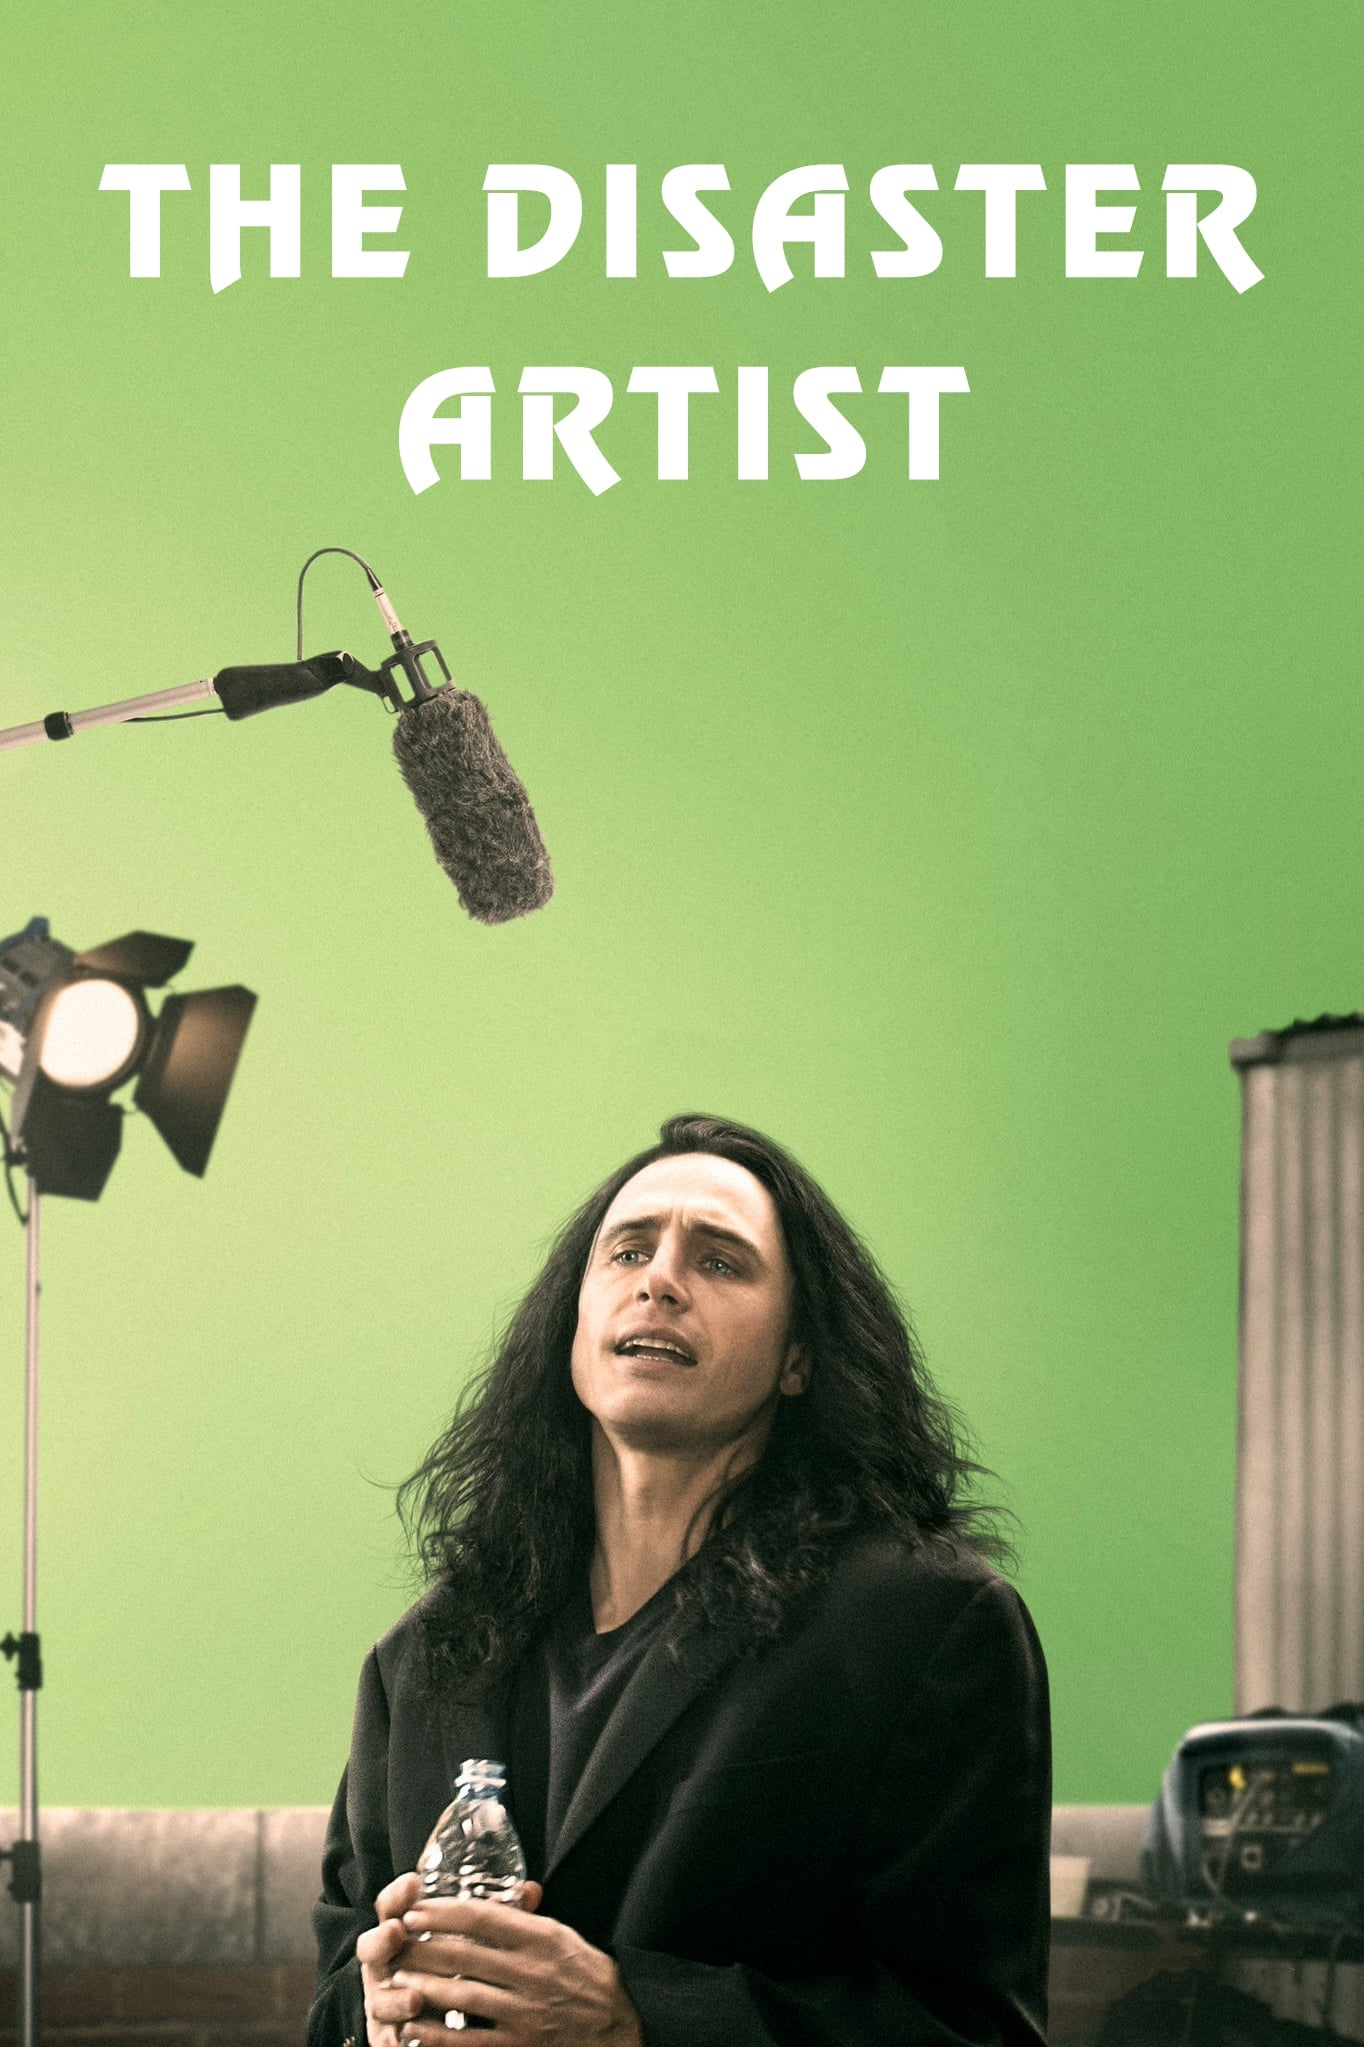 Poster and image movie Film The Disaster Artist - The Disaster Artist - The Disaster Artist -  2017